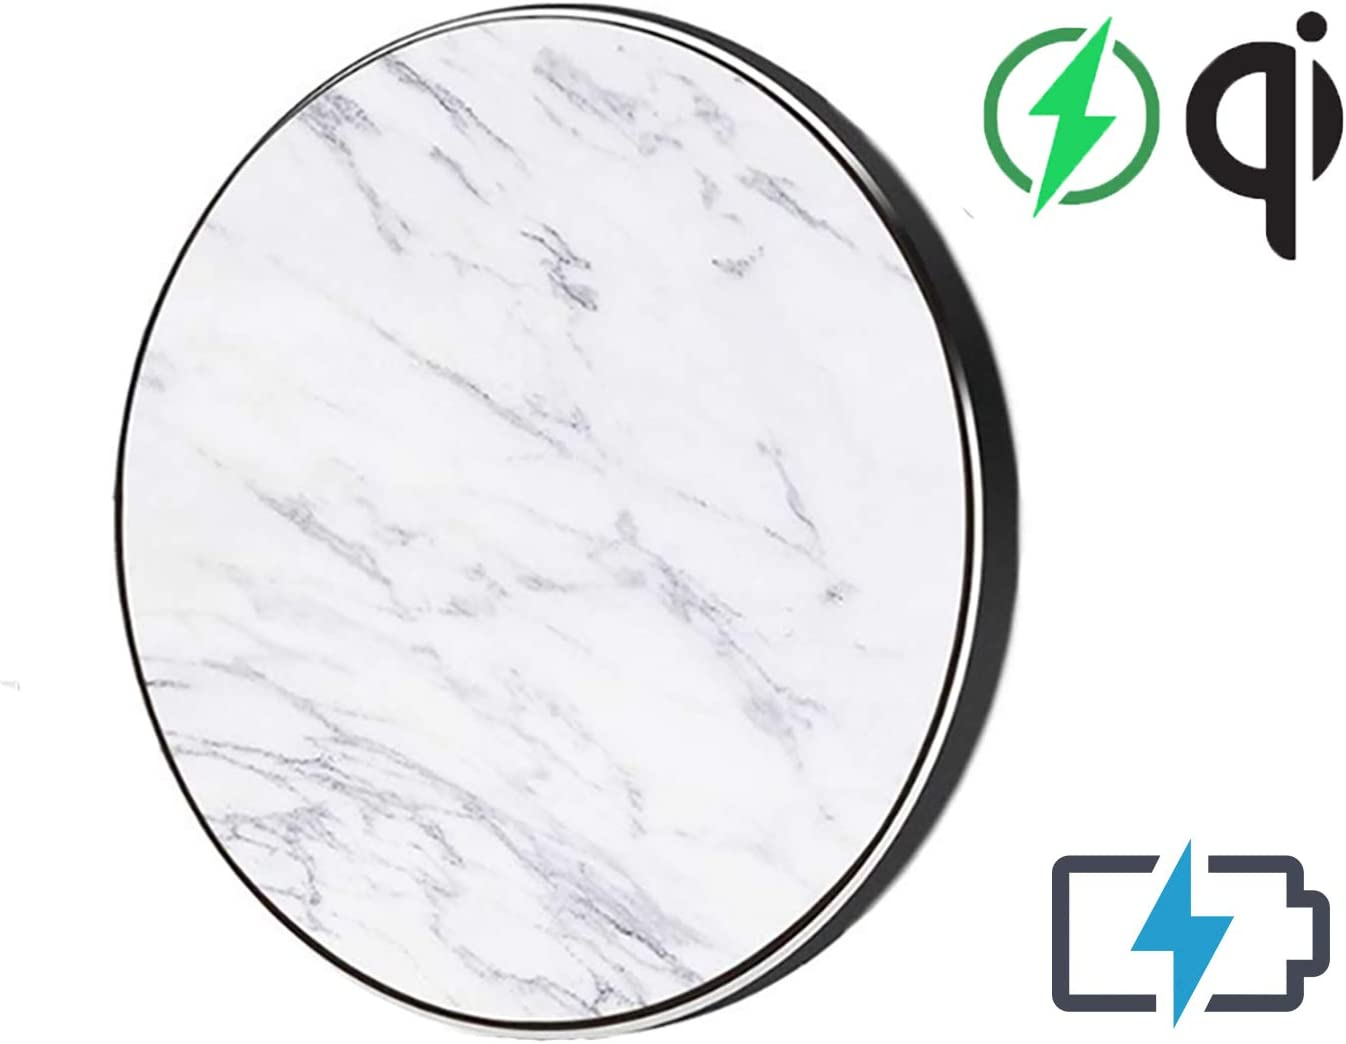 TECHDIRECT Marble Wireless Charger with Extra-Long Micro-USB Rapid Charging Qi Standard 10V LG G6 for Samsung Galaxy S9//Note Slim Fast Charging Pad Compatible with Apple iPhone X//XS//XR//8//8 Plus